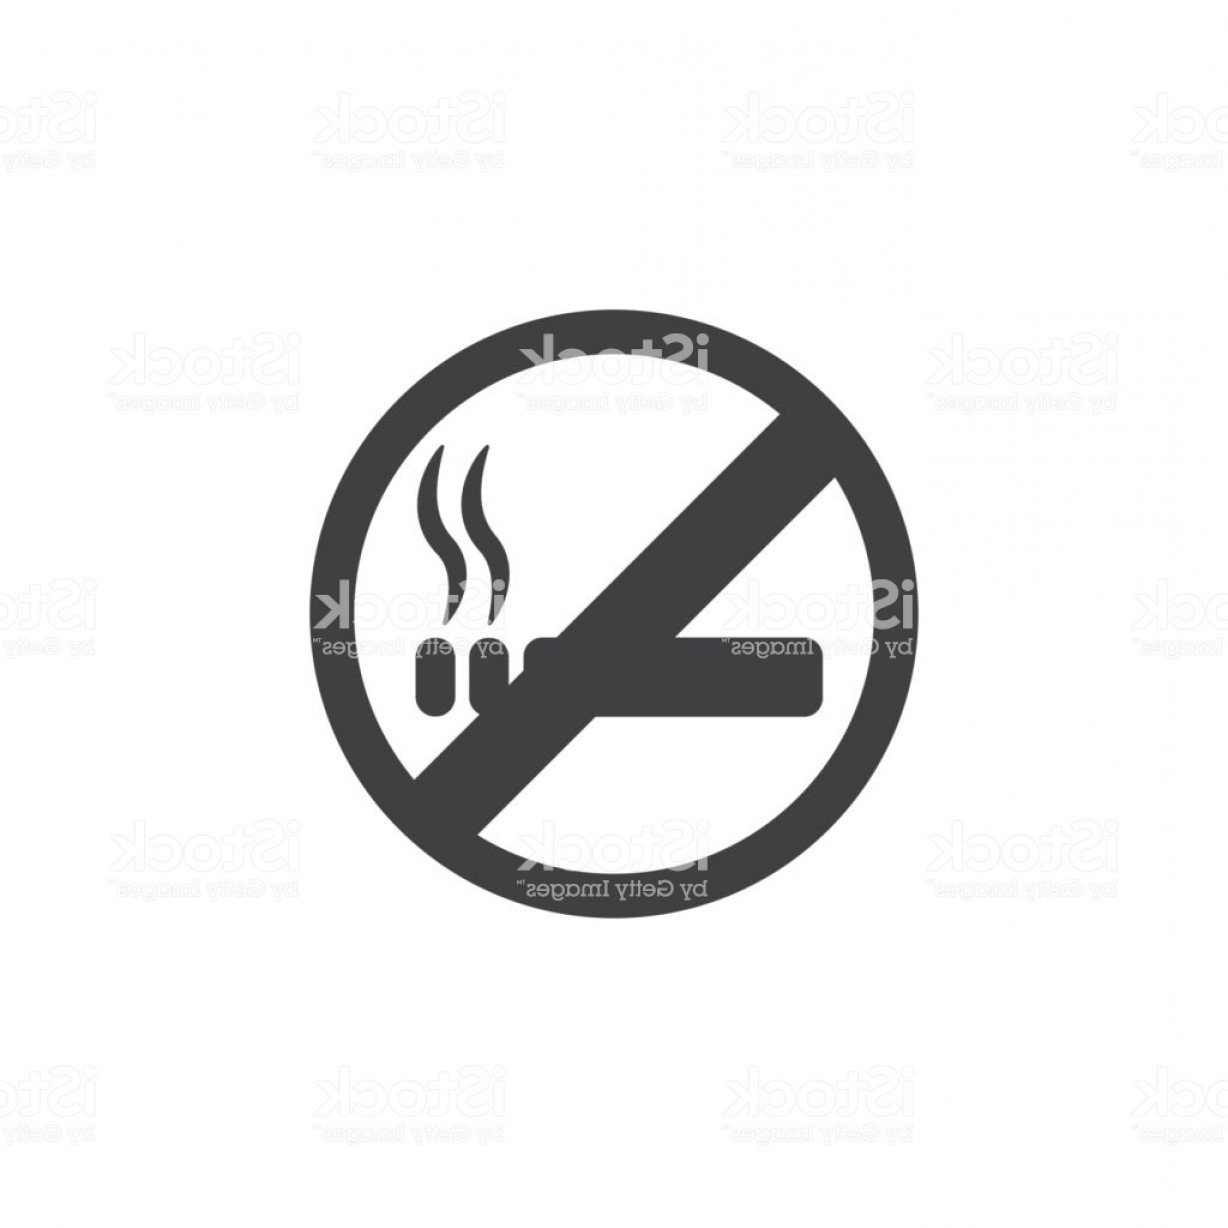 No Smoking Vector Art Black And White: No Smoking Icon In Black On A White Background Vector Illustration Gm